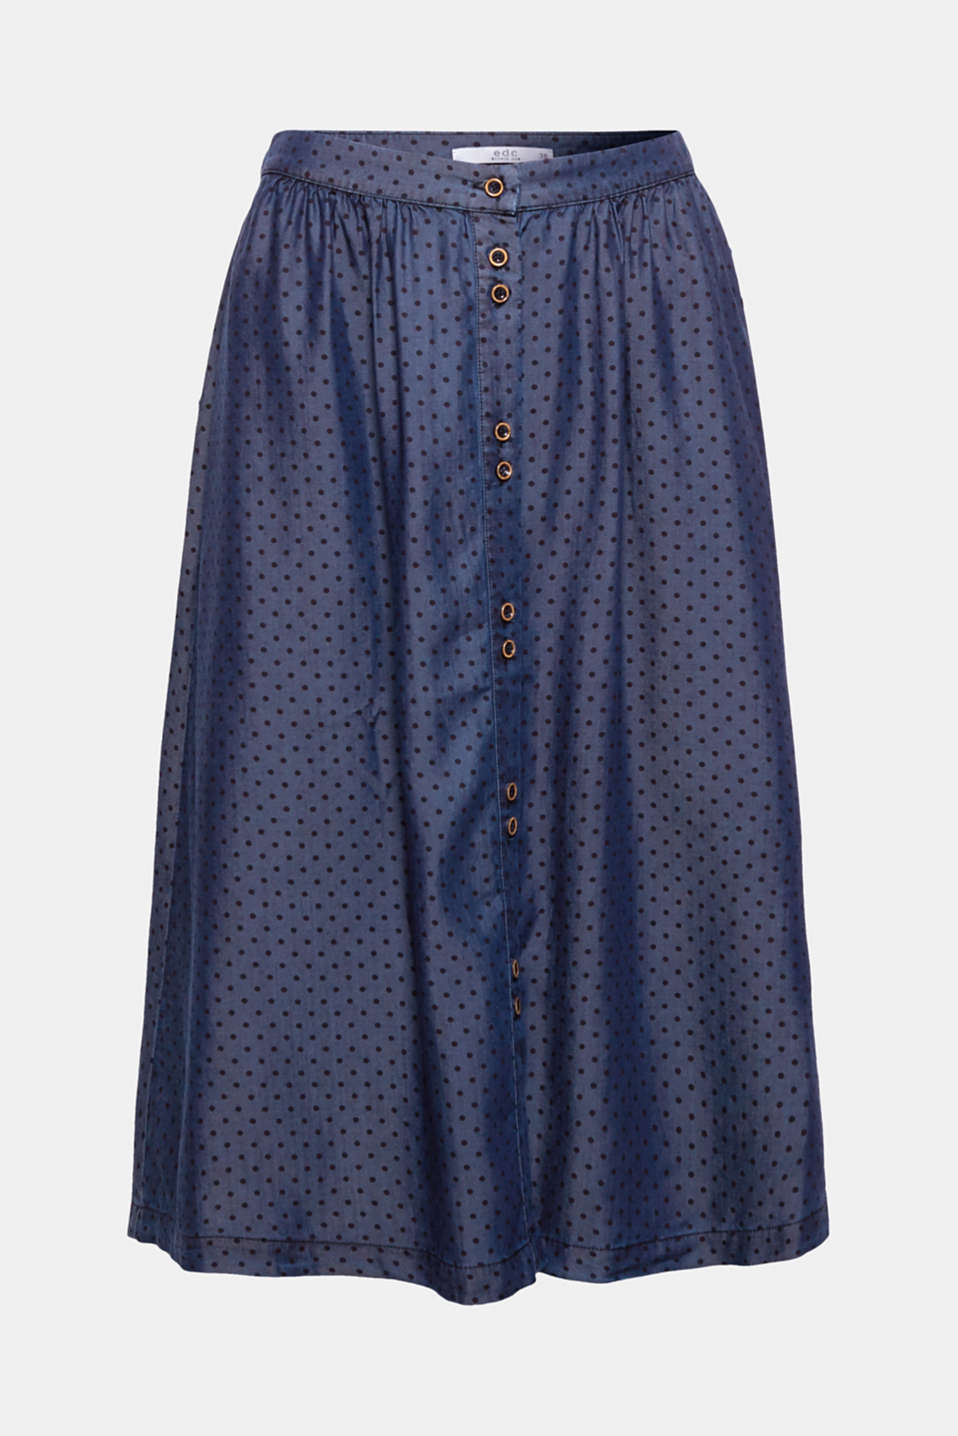 Tinted polka dots, the accentuated button placket and the flared shape make this skirt a stylish favourite.